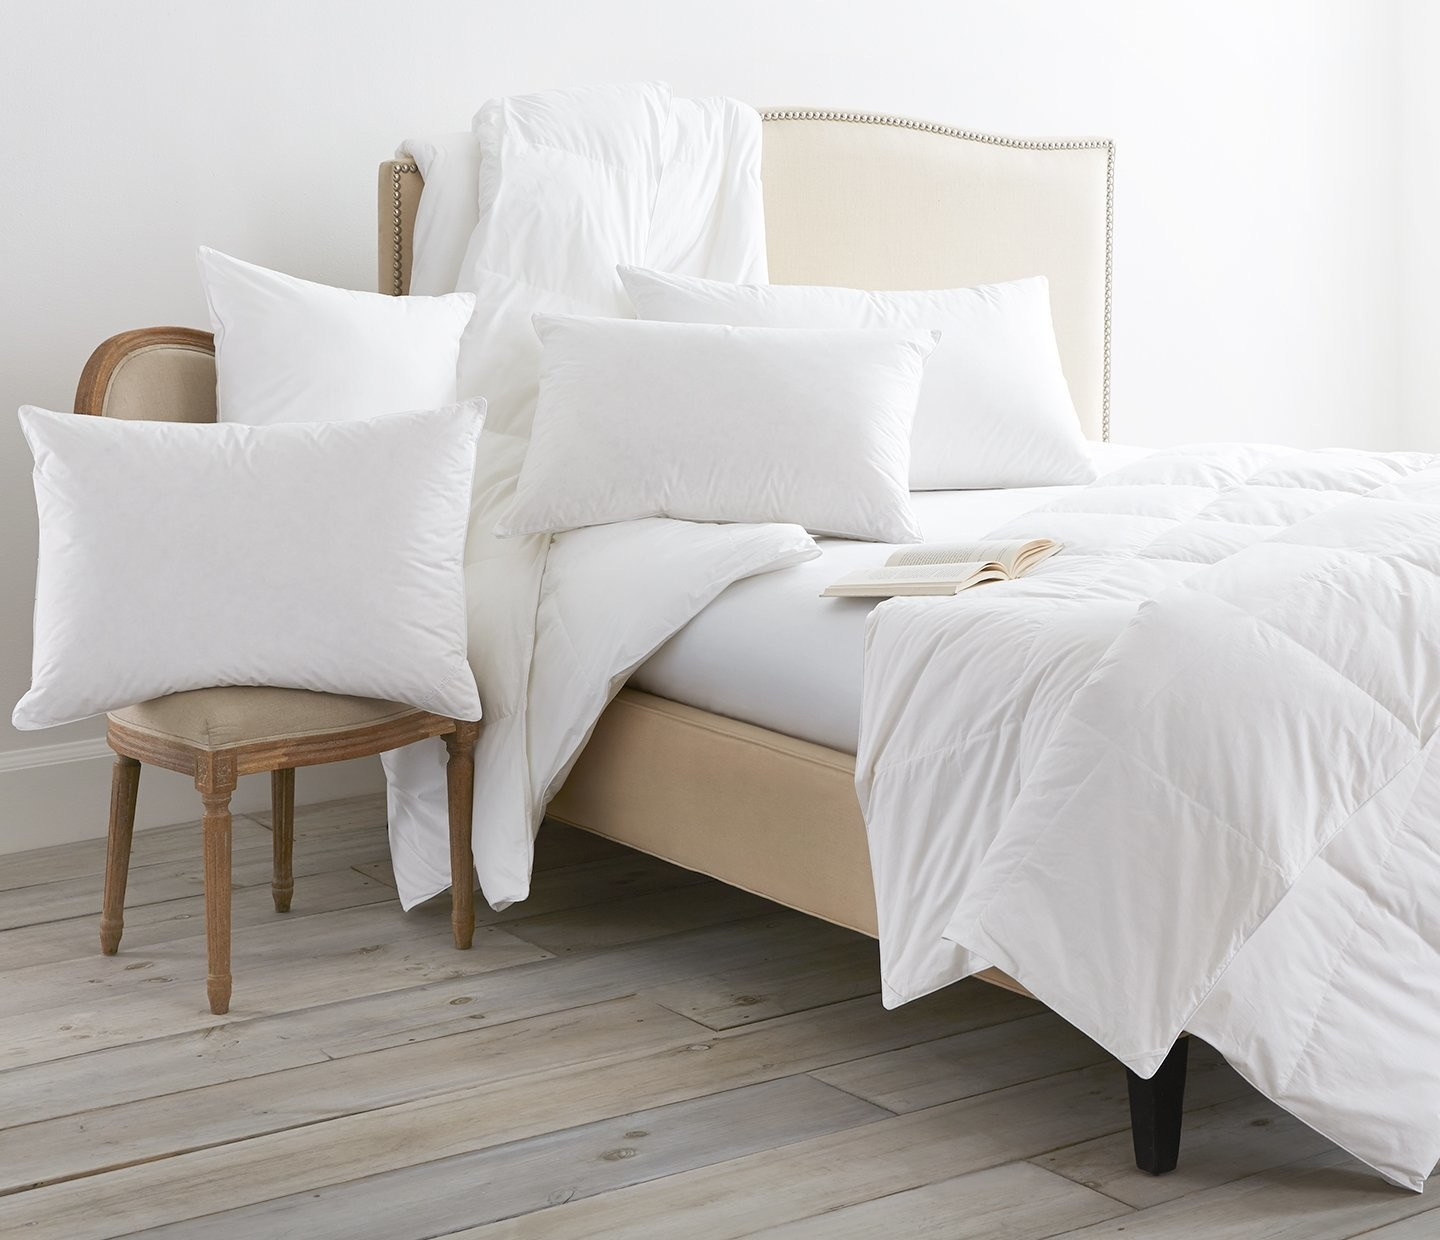 Luxurious Bedding You Need Now (Because You Can Sleep As Late As You'd Like)